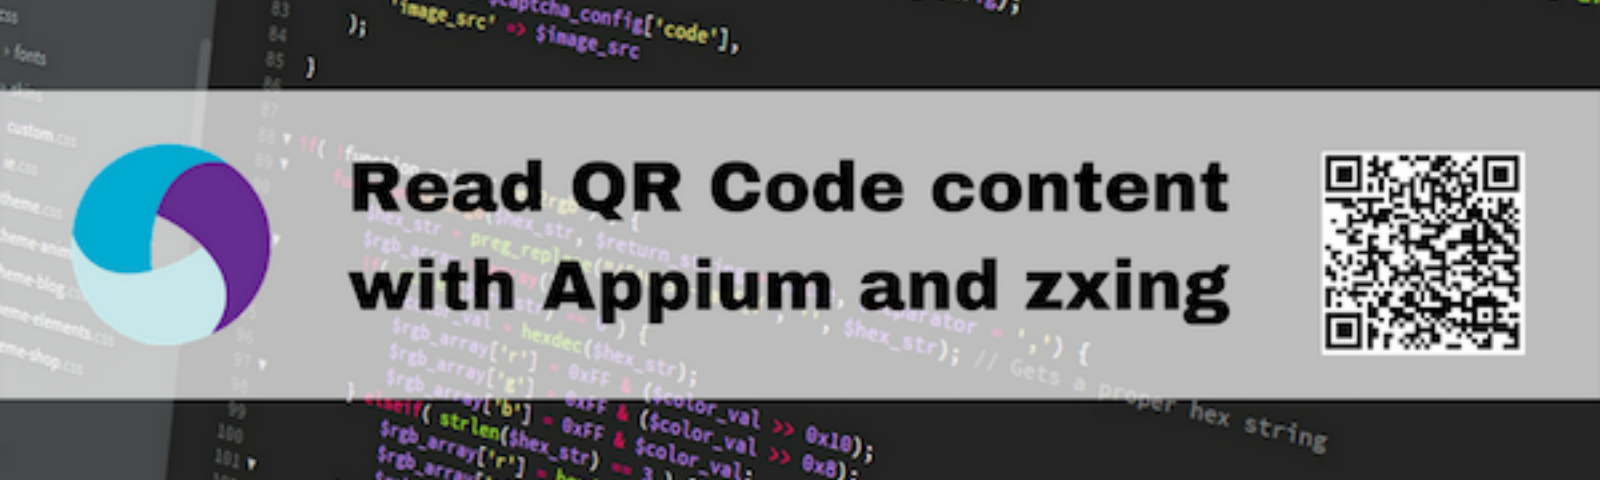 Read a QR Code content with Appium and zxing - assert(QA